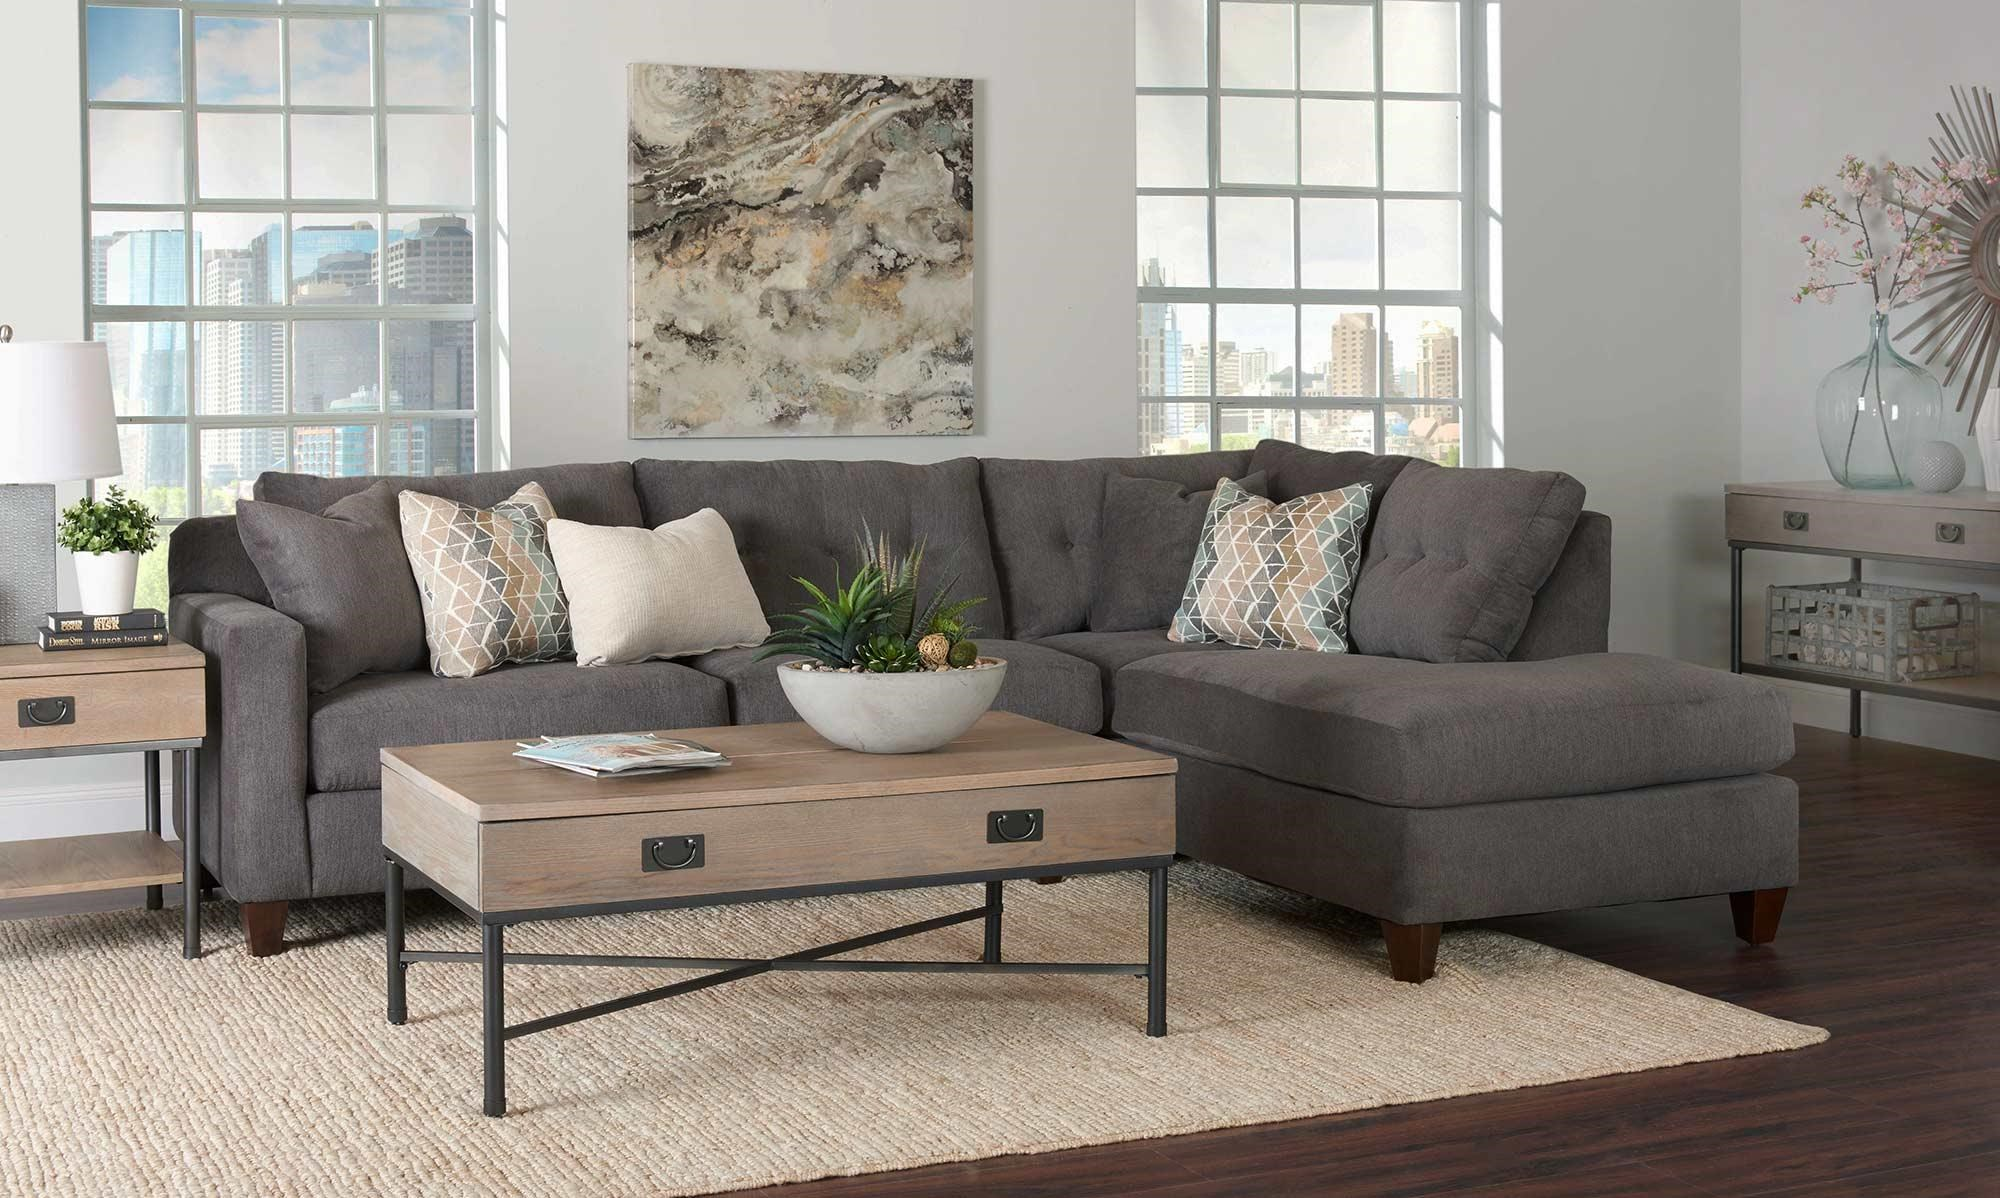 2PC Sectional Sofa w/ Chaise